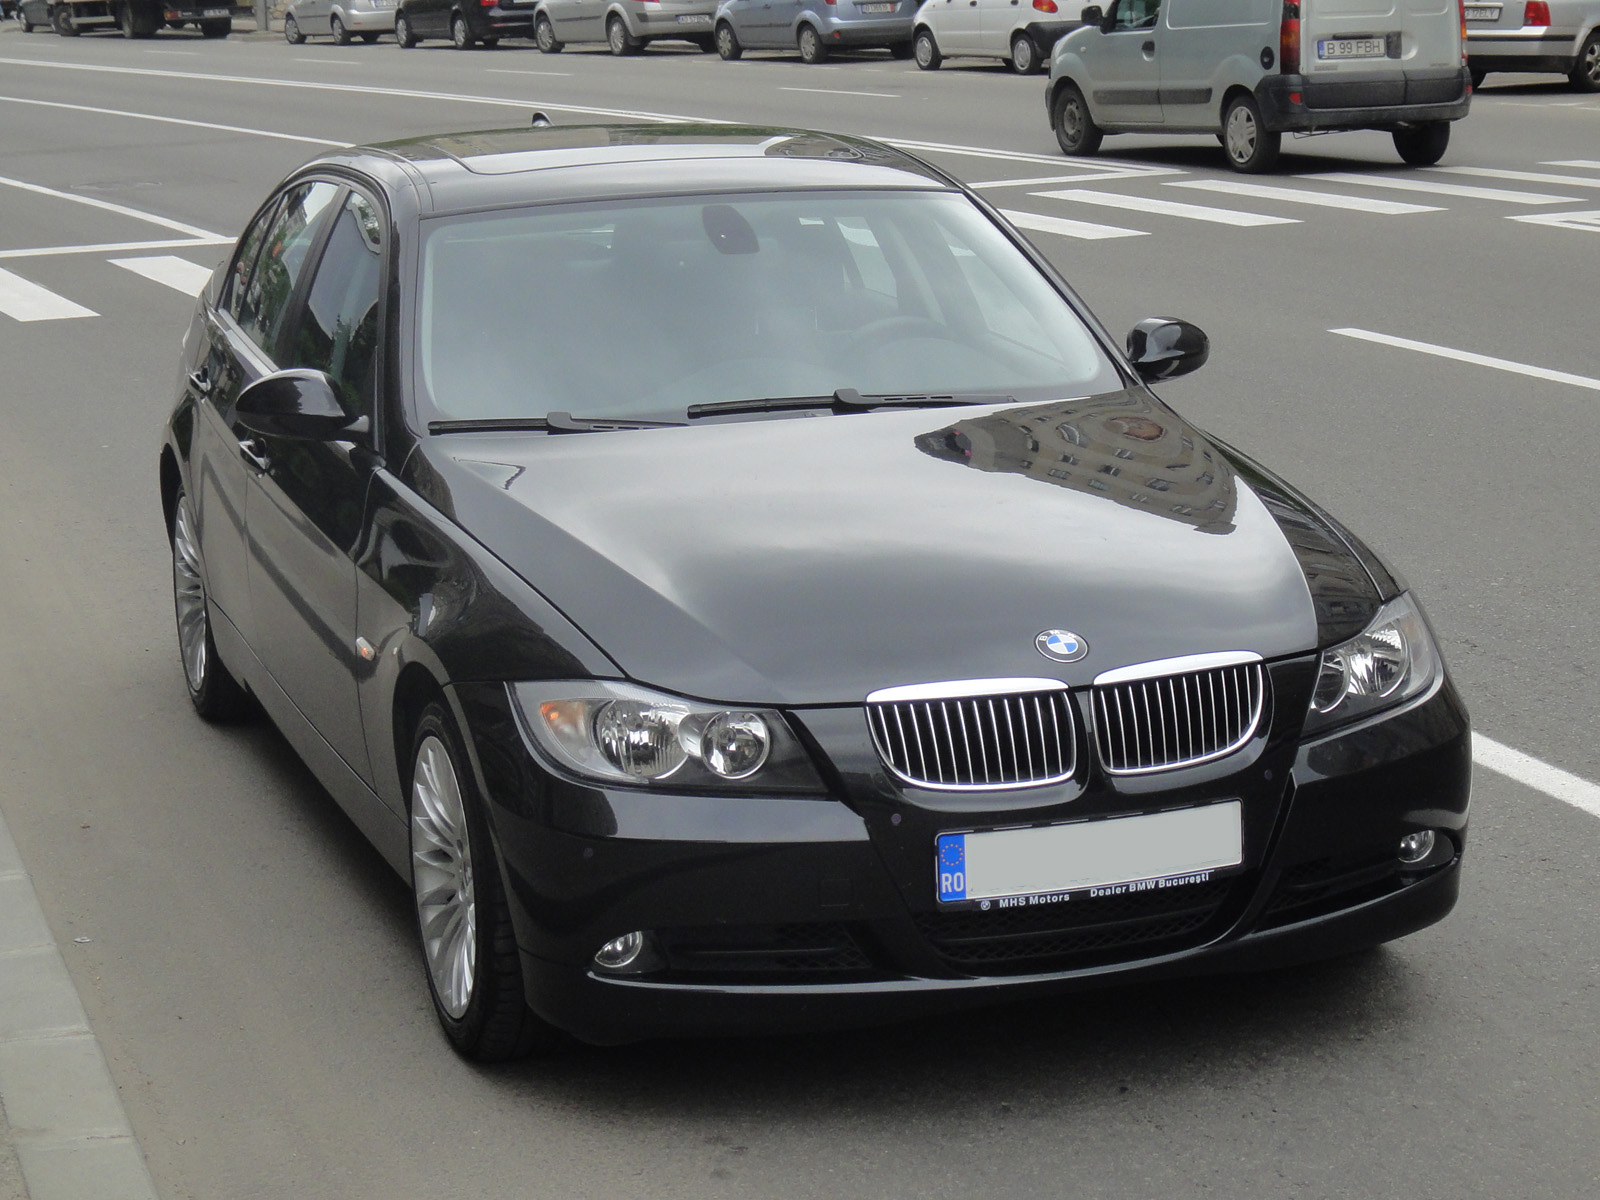 Jurnal de bord bmw 320d e90 for Chrome line exterieur bmw